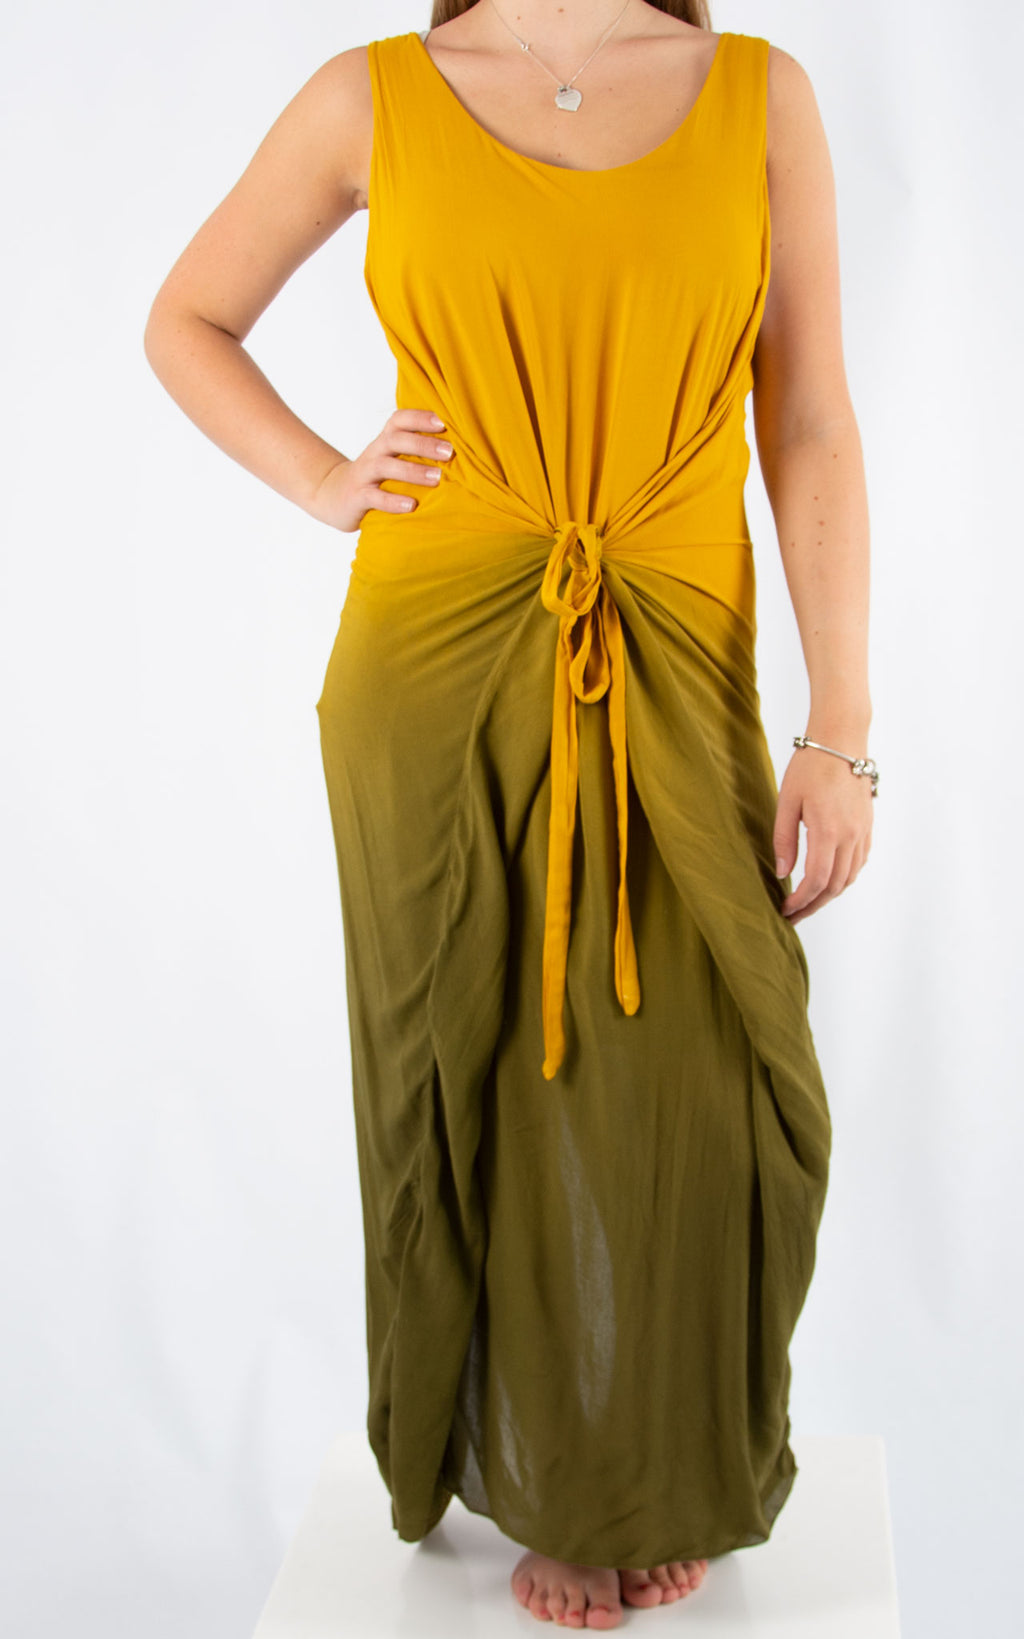 Yellow Tie Dye Maxi Dress | Made in Italy